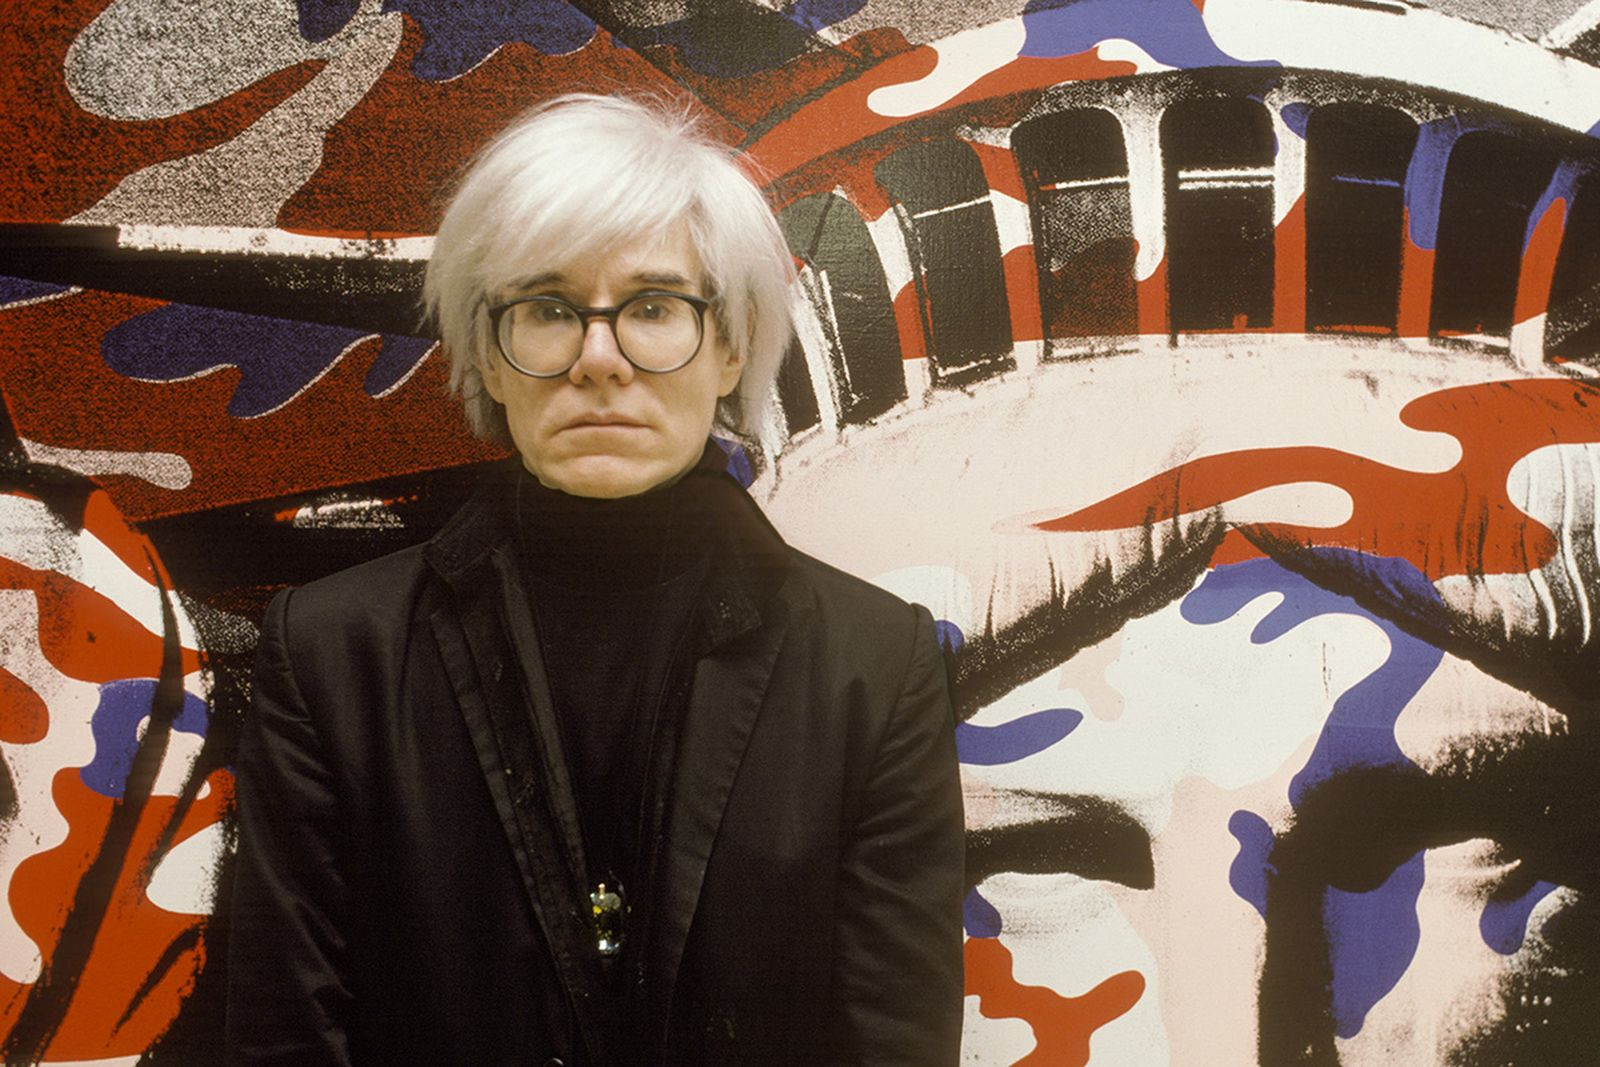 Andy Warhol paints the Statue of Liberty in Paris